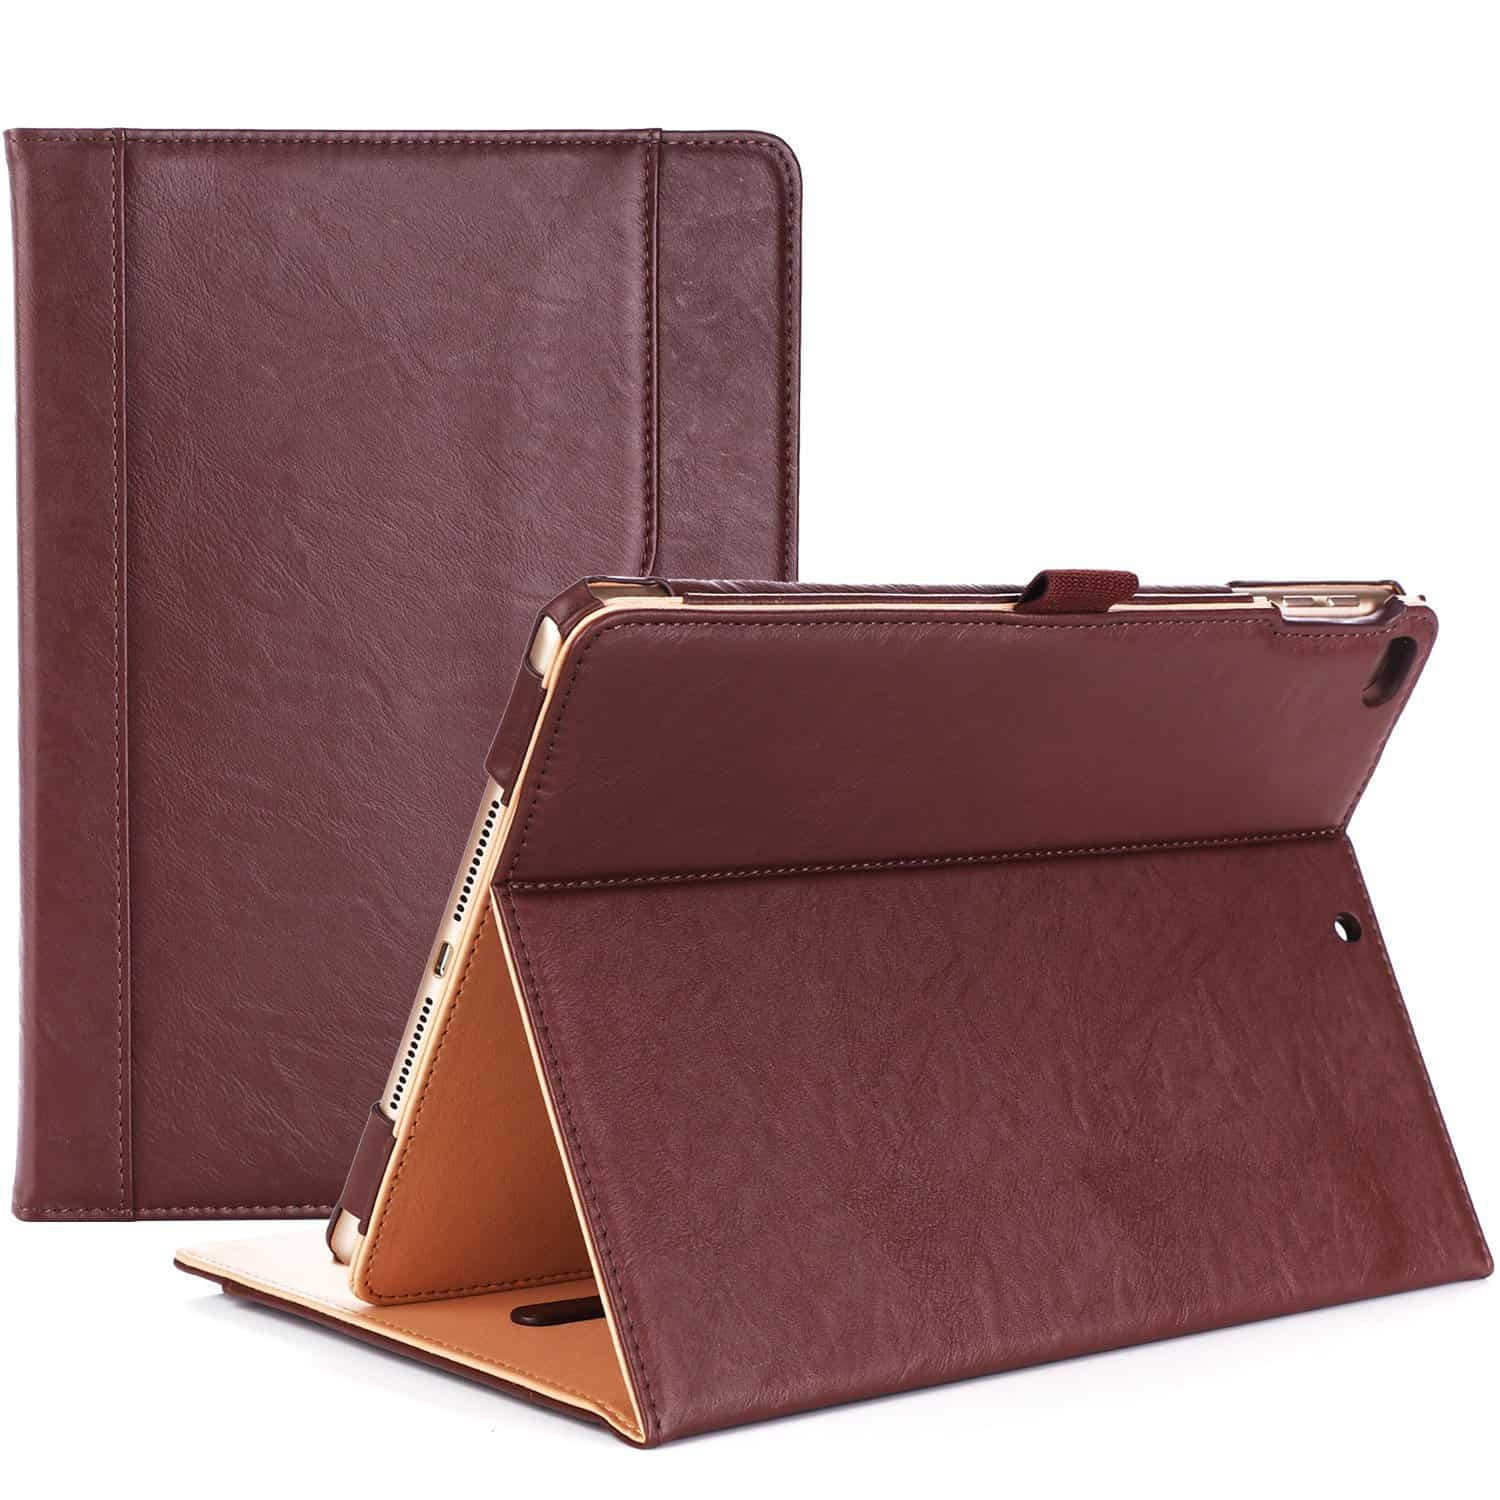 eaaa133253 Best iPad cases for every type of user